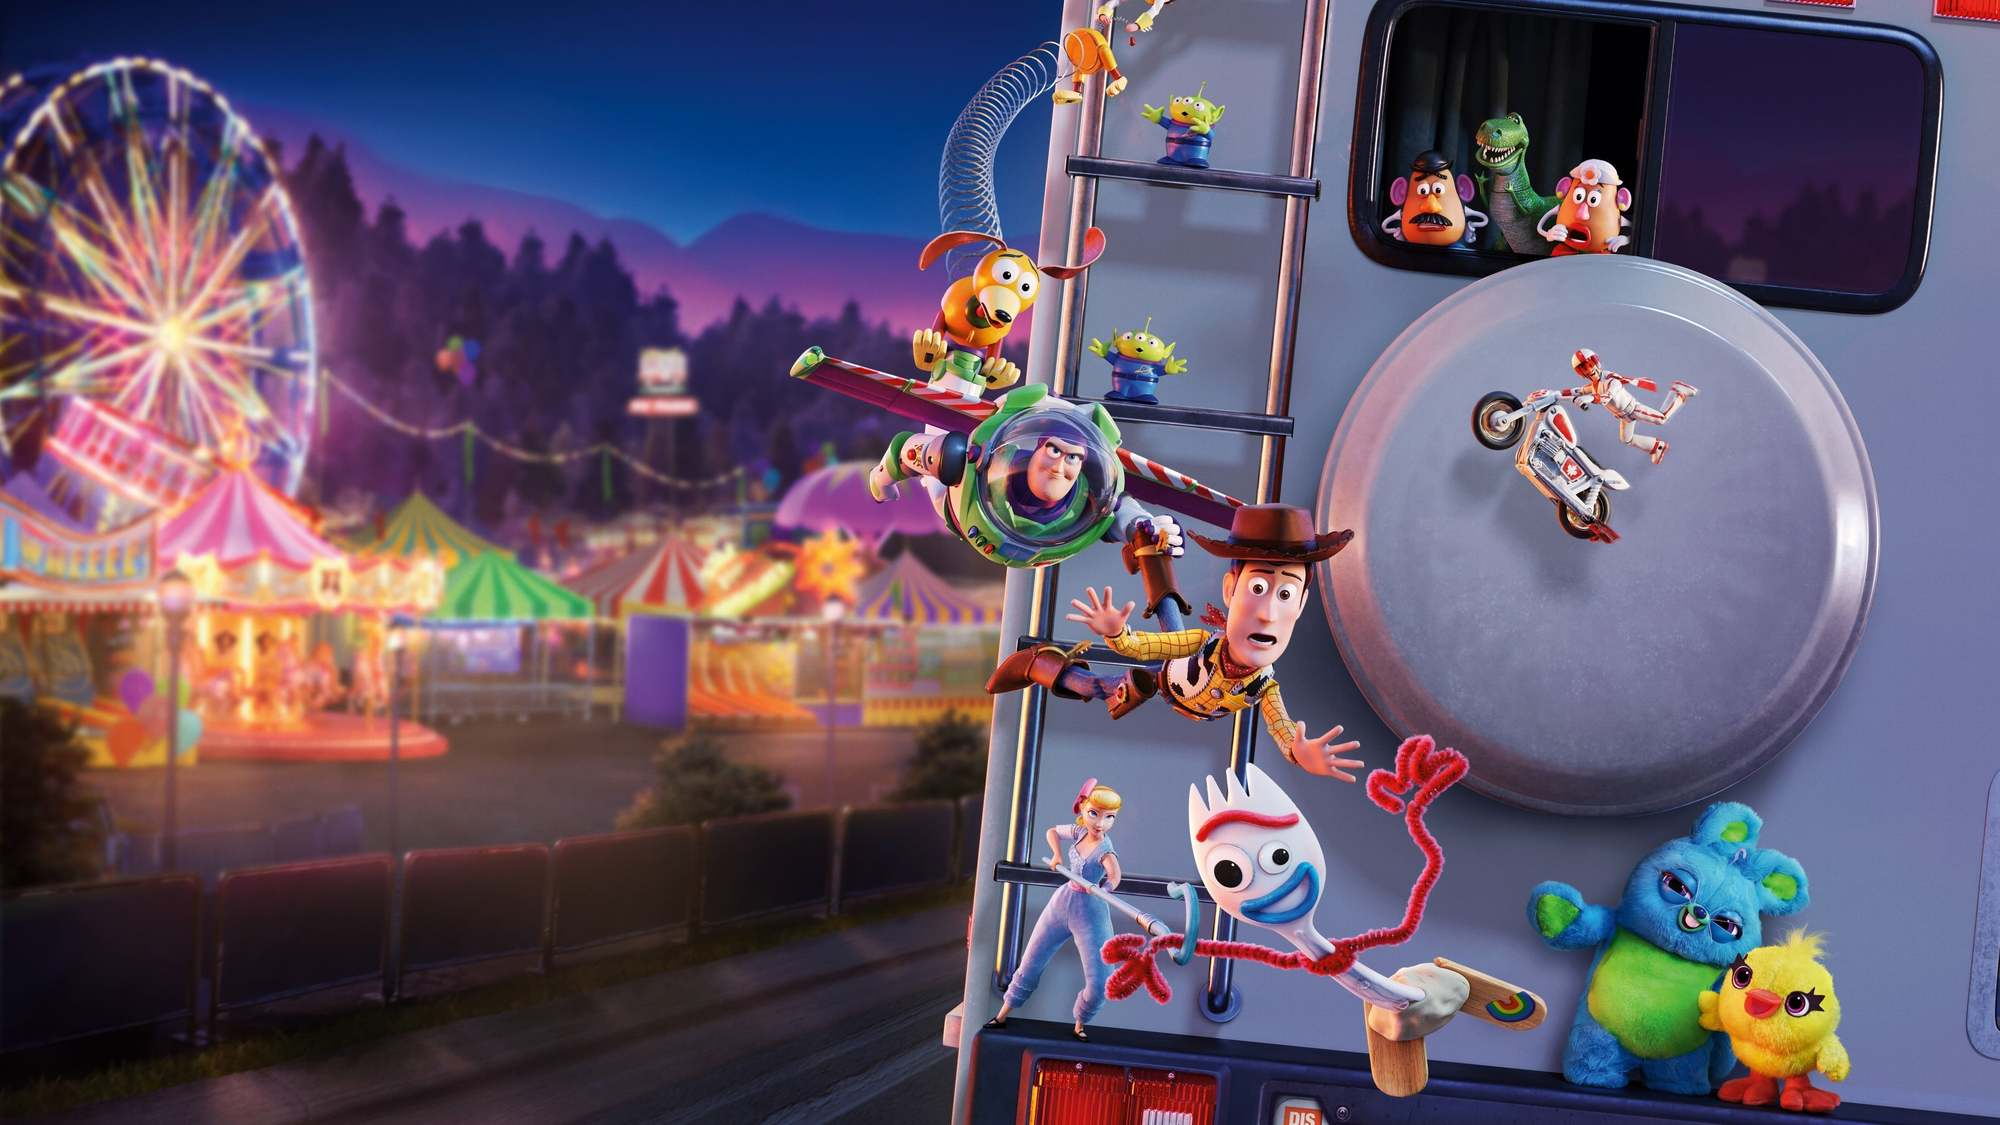 From 'Toy Story 4' to 'Late Night,' here's what to see in theaters now |  Hoodline